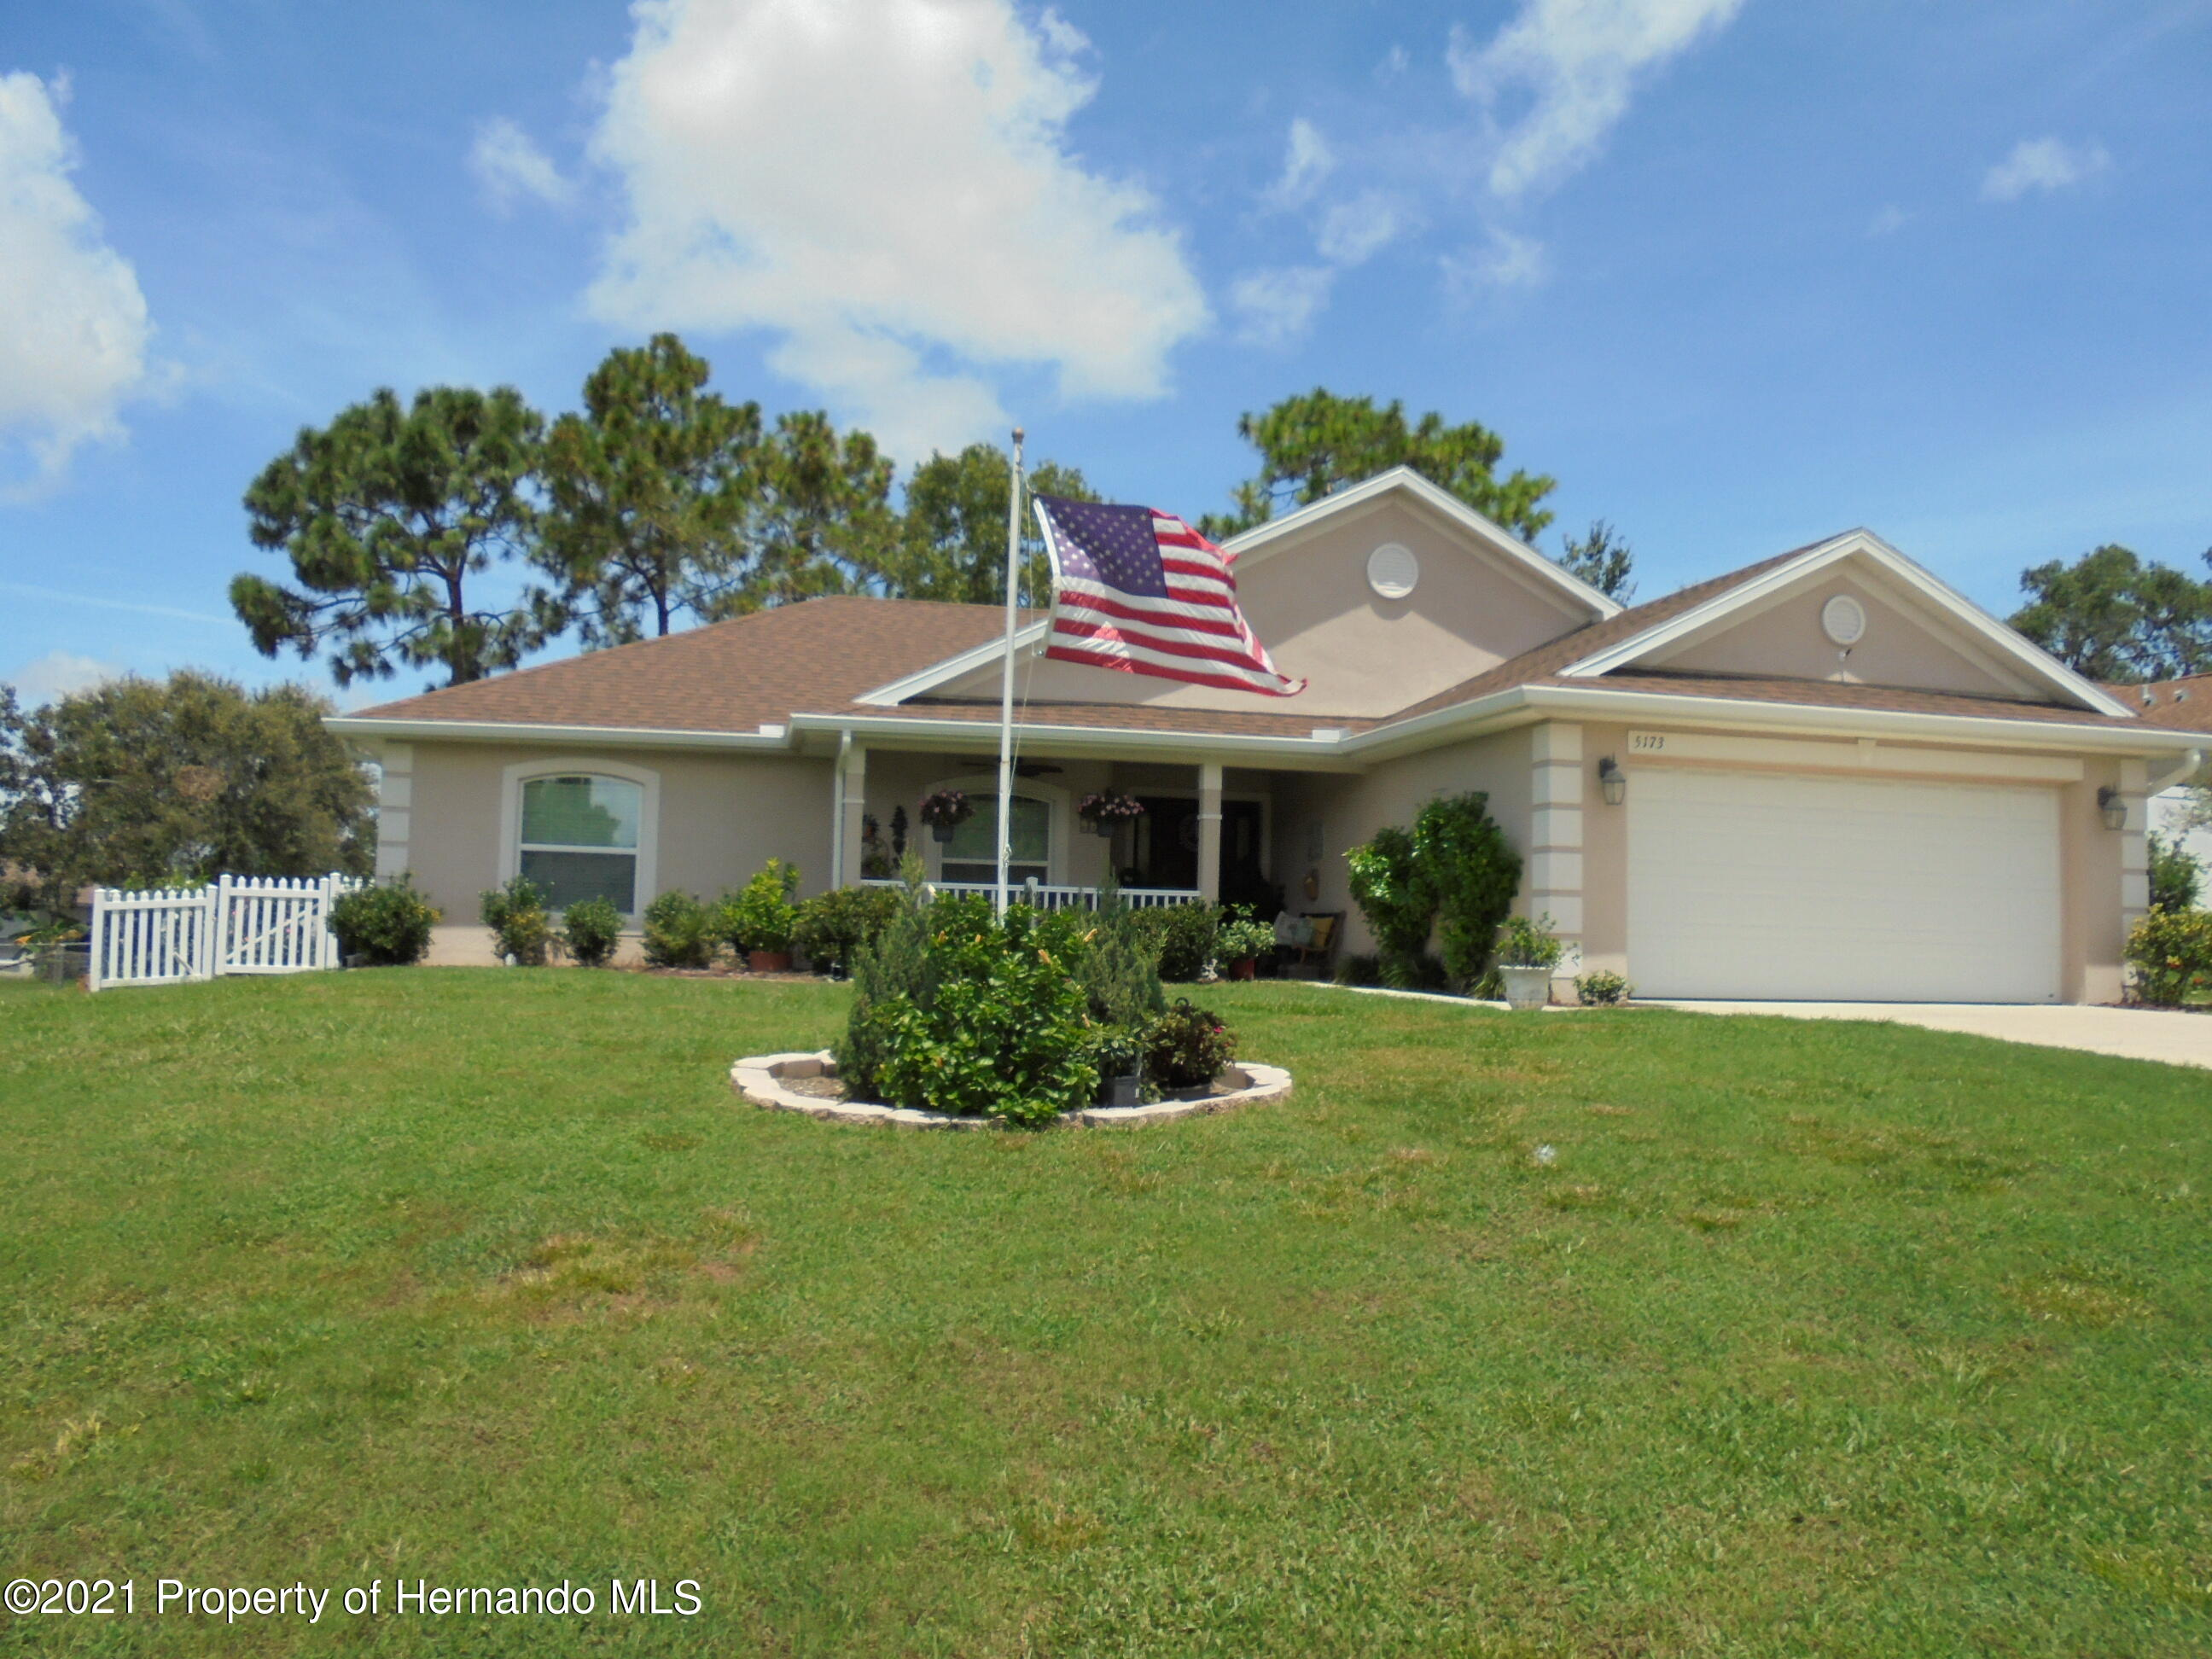 Details for 5173 Roble Avenue, Spring Hill, FL 34608